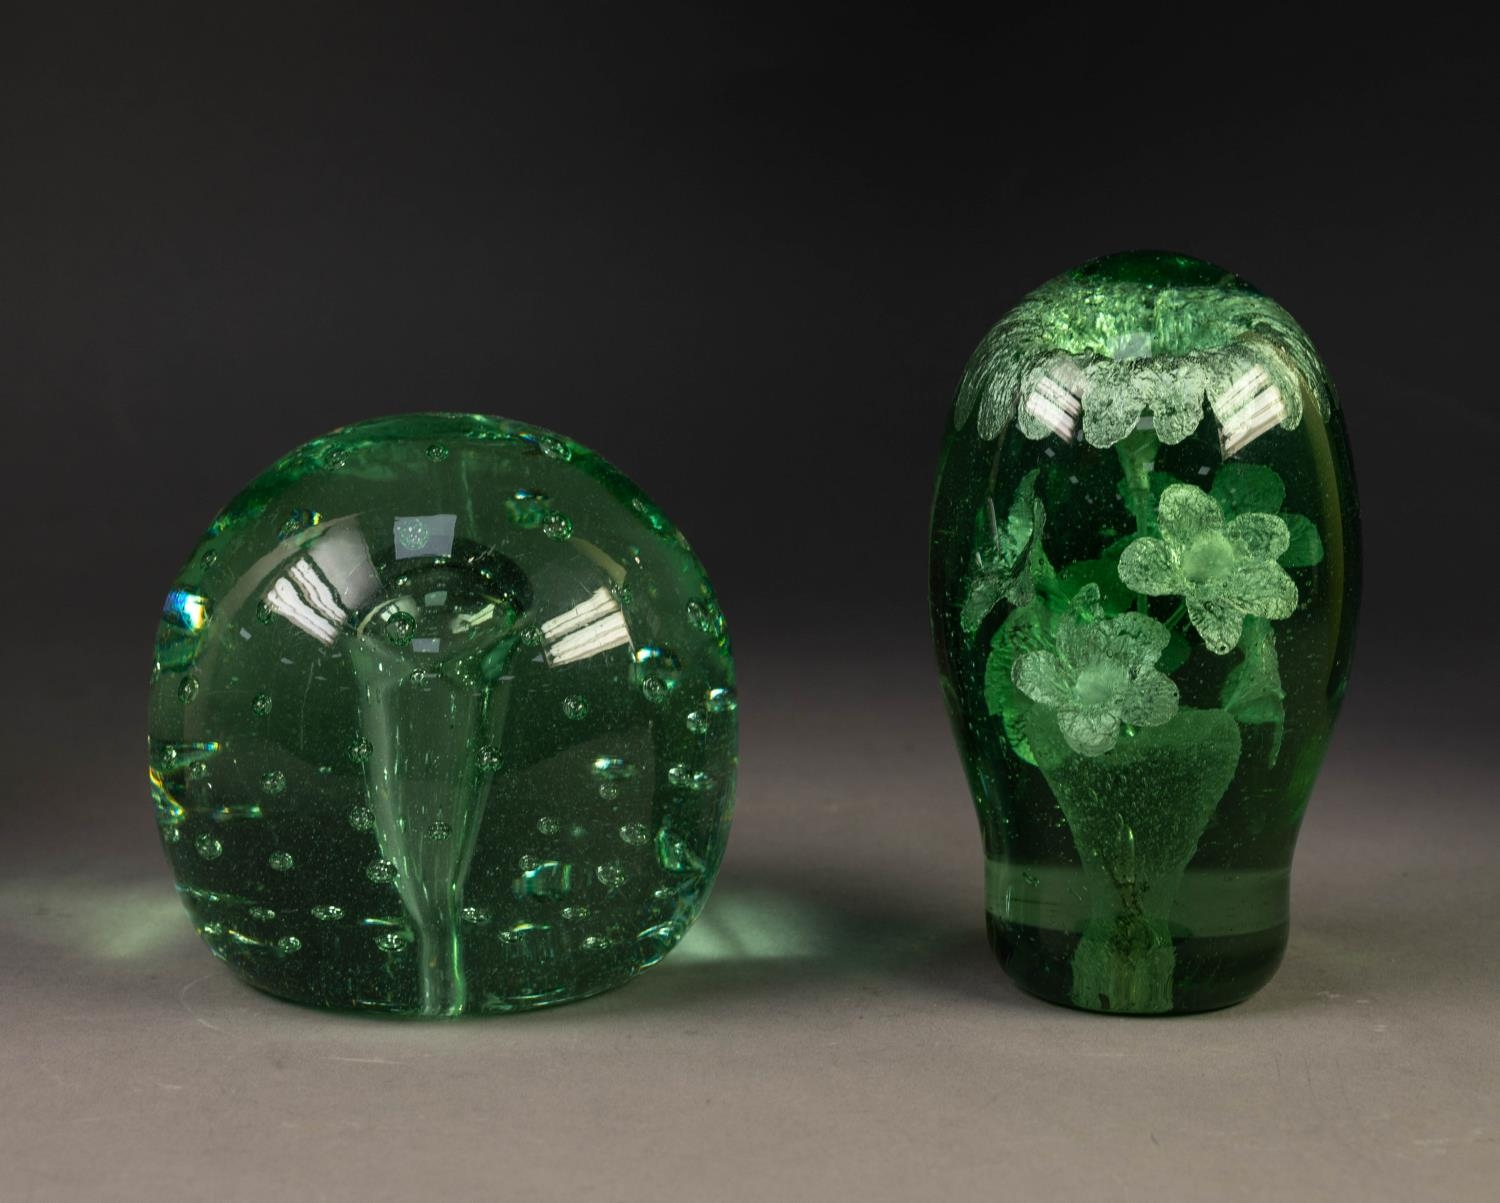 TWO NINETEENTH CENTURY GREEN GLASS DUMPS, one with bubble inclusions, 4 ½? (11.4cm) high, the